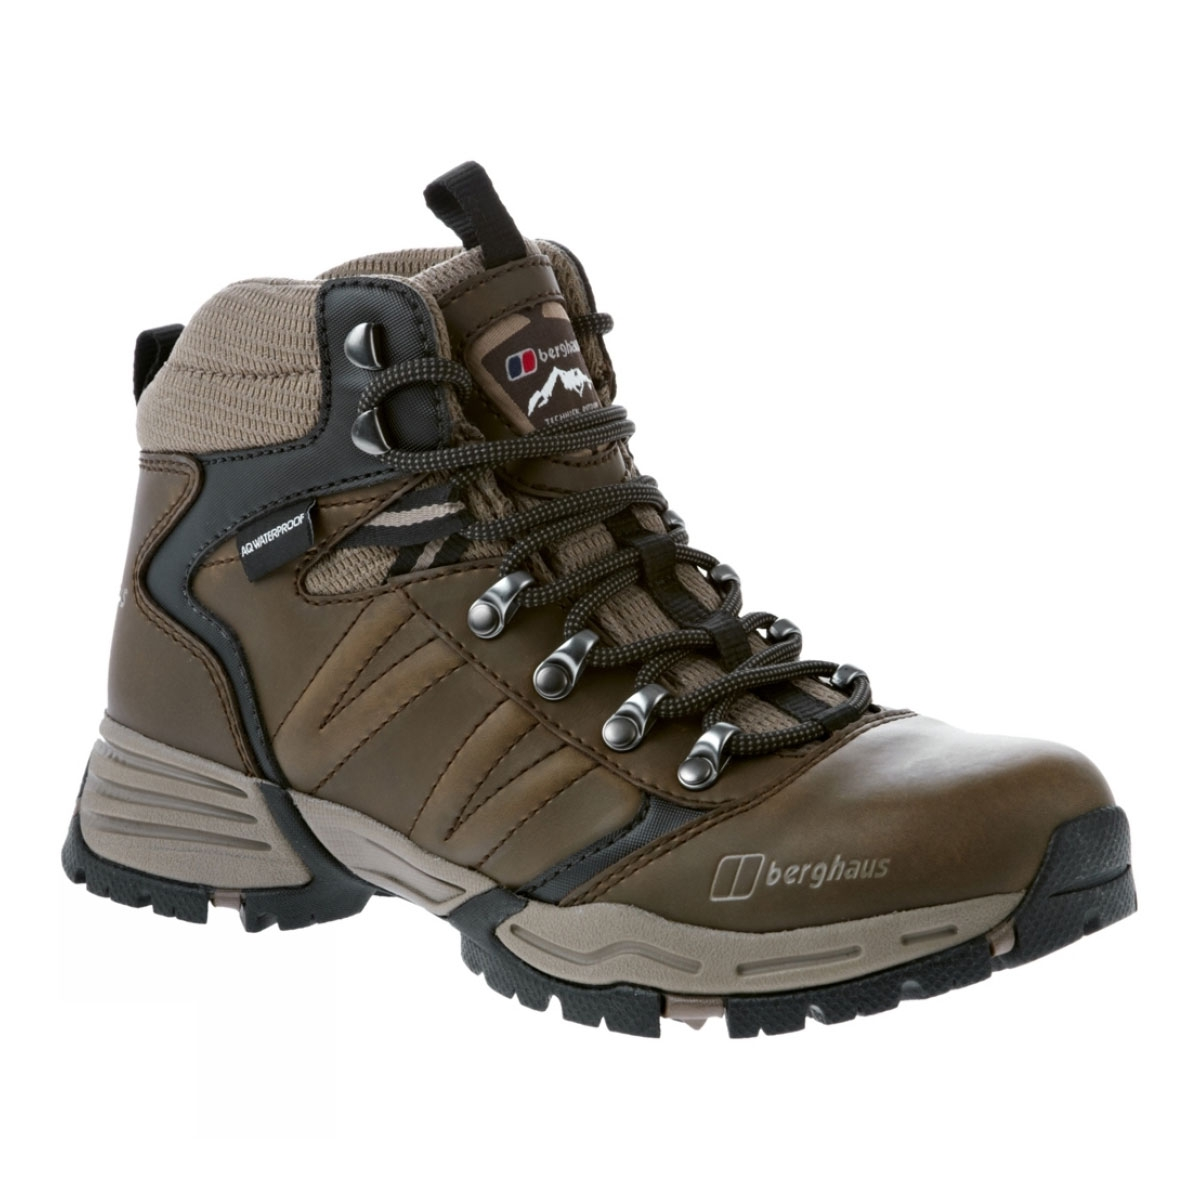 berghaus expeditor aq leather walking boots s